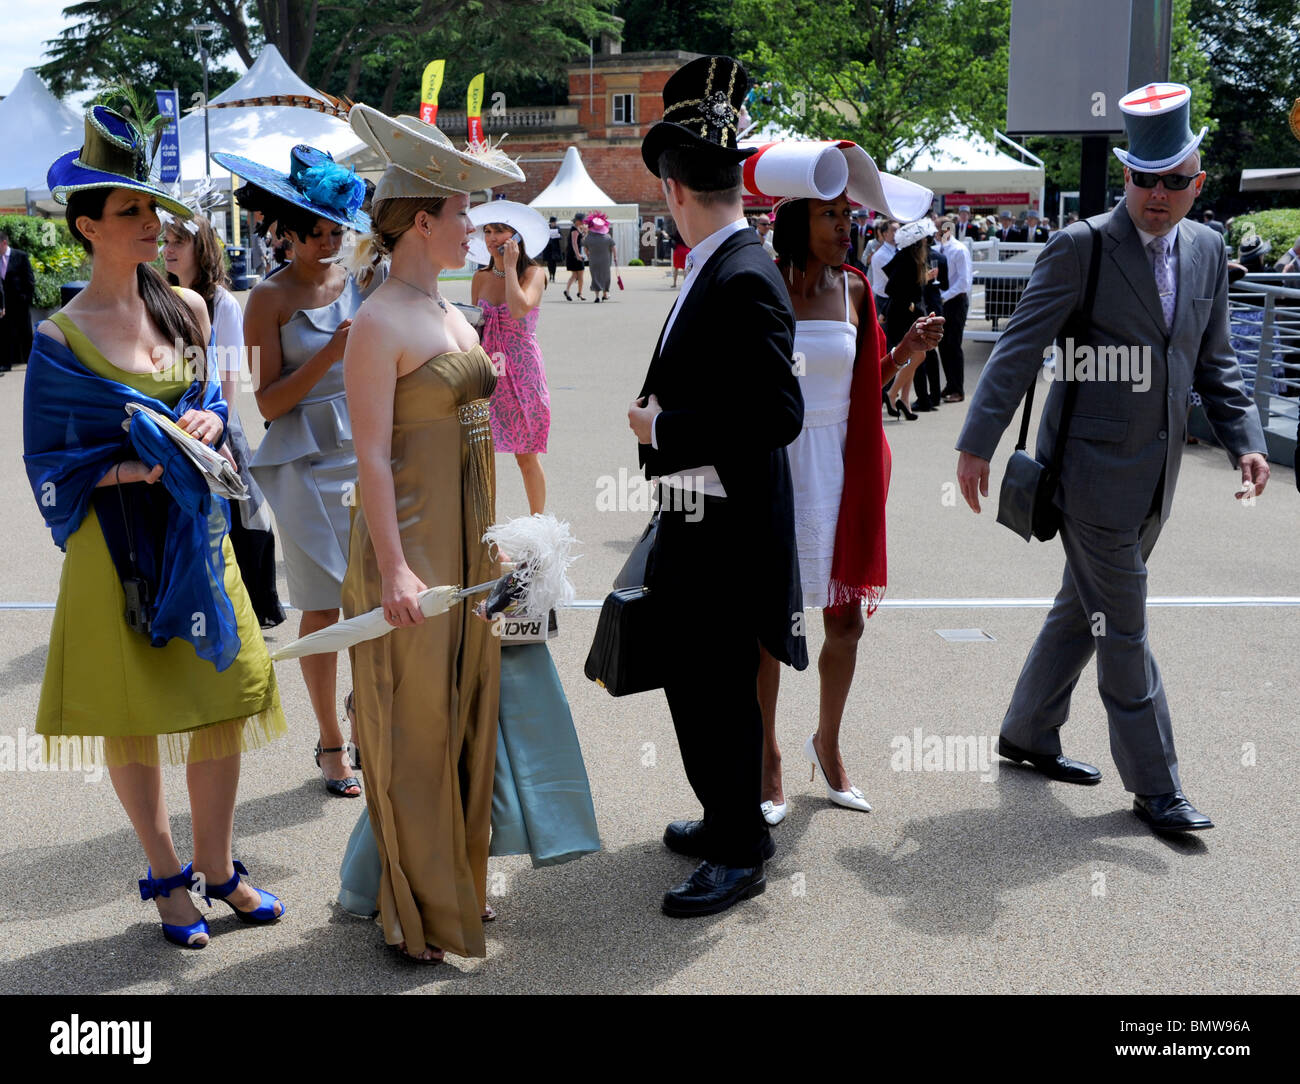 Royal Ascot racegoers in fashion outfits Berkshire UK - Stock Image